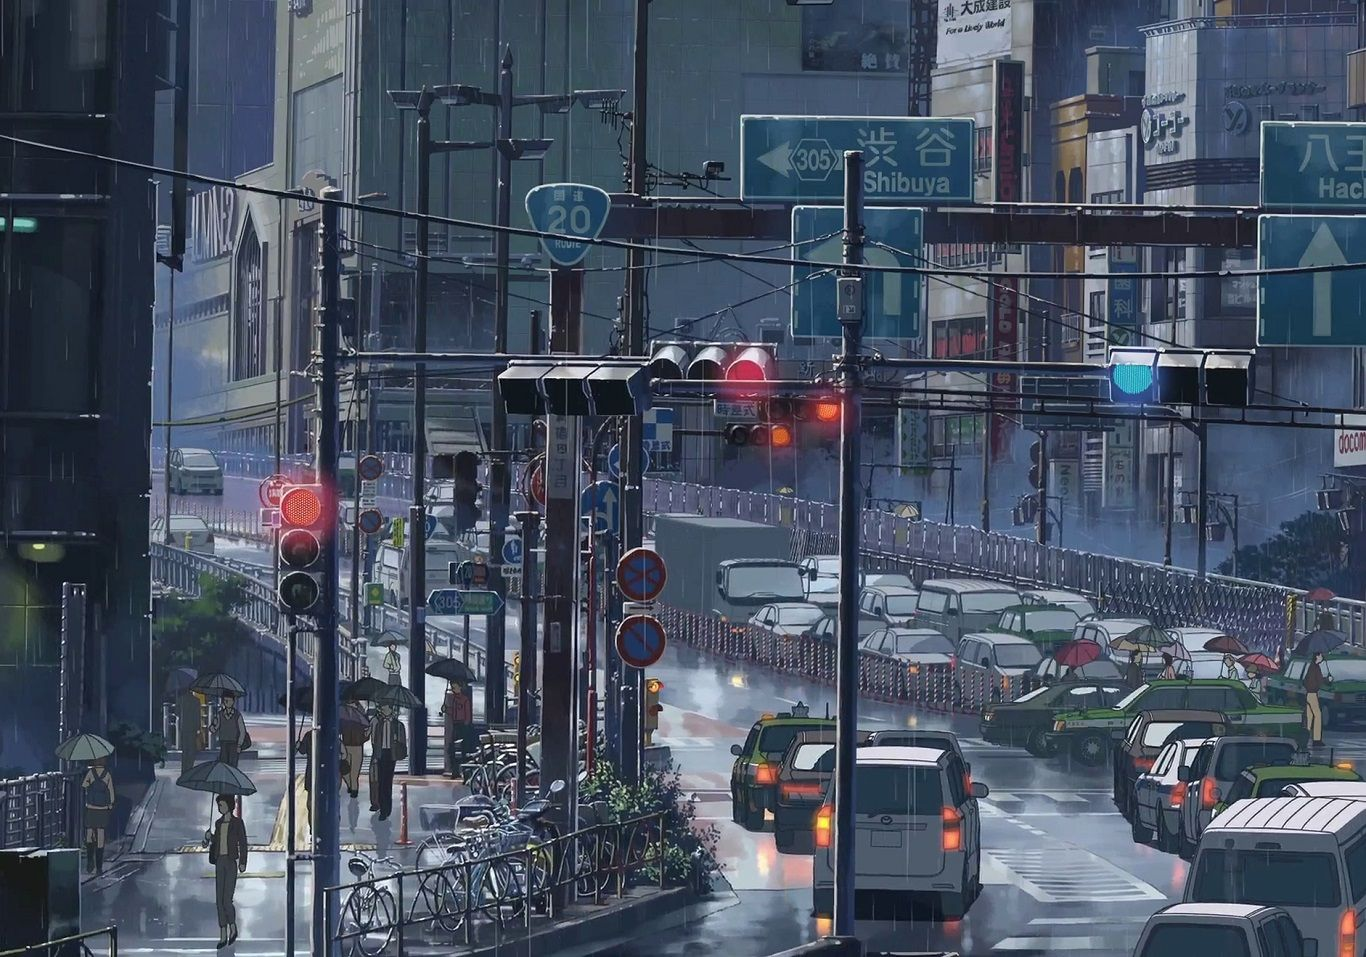 Cityscape City Town Anime Scenery Background Wallpaper Garden Of Words Anime City Anime Scenery